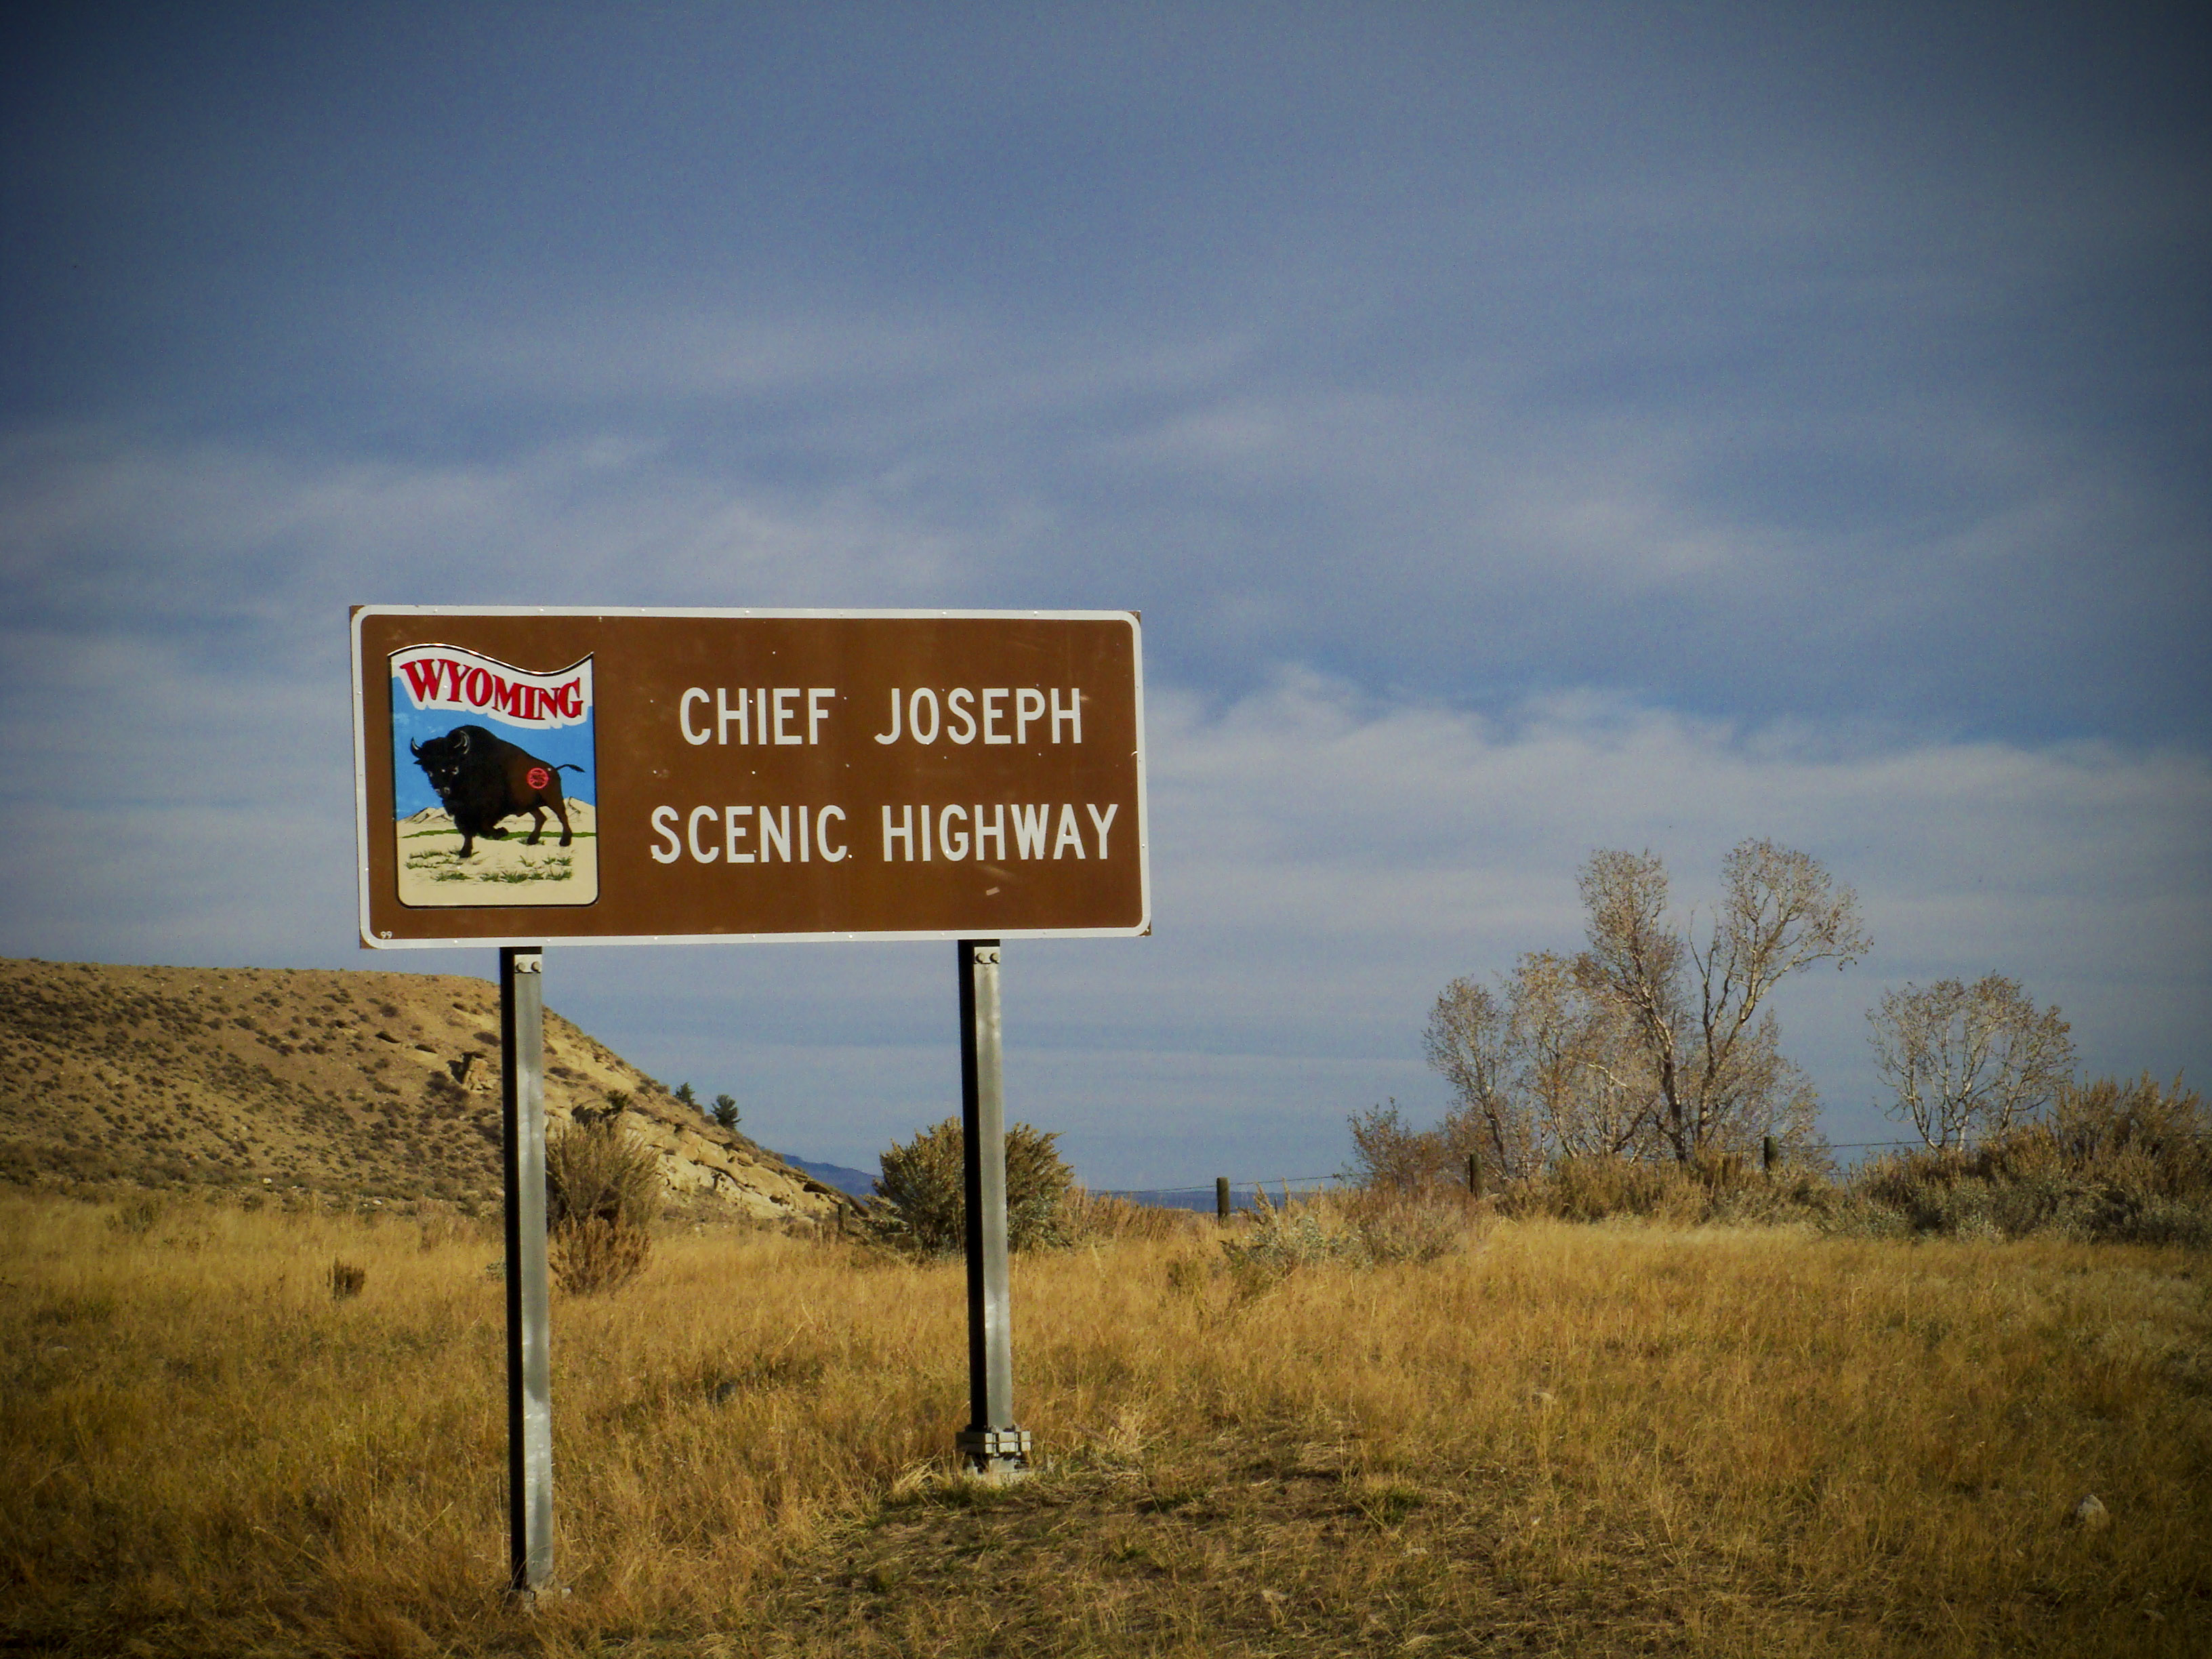 sign for Chief Joseph Scenic Highway